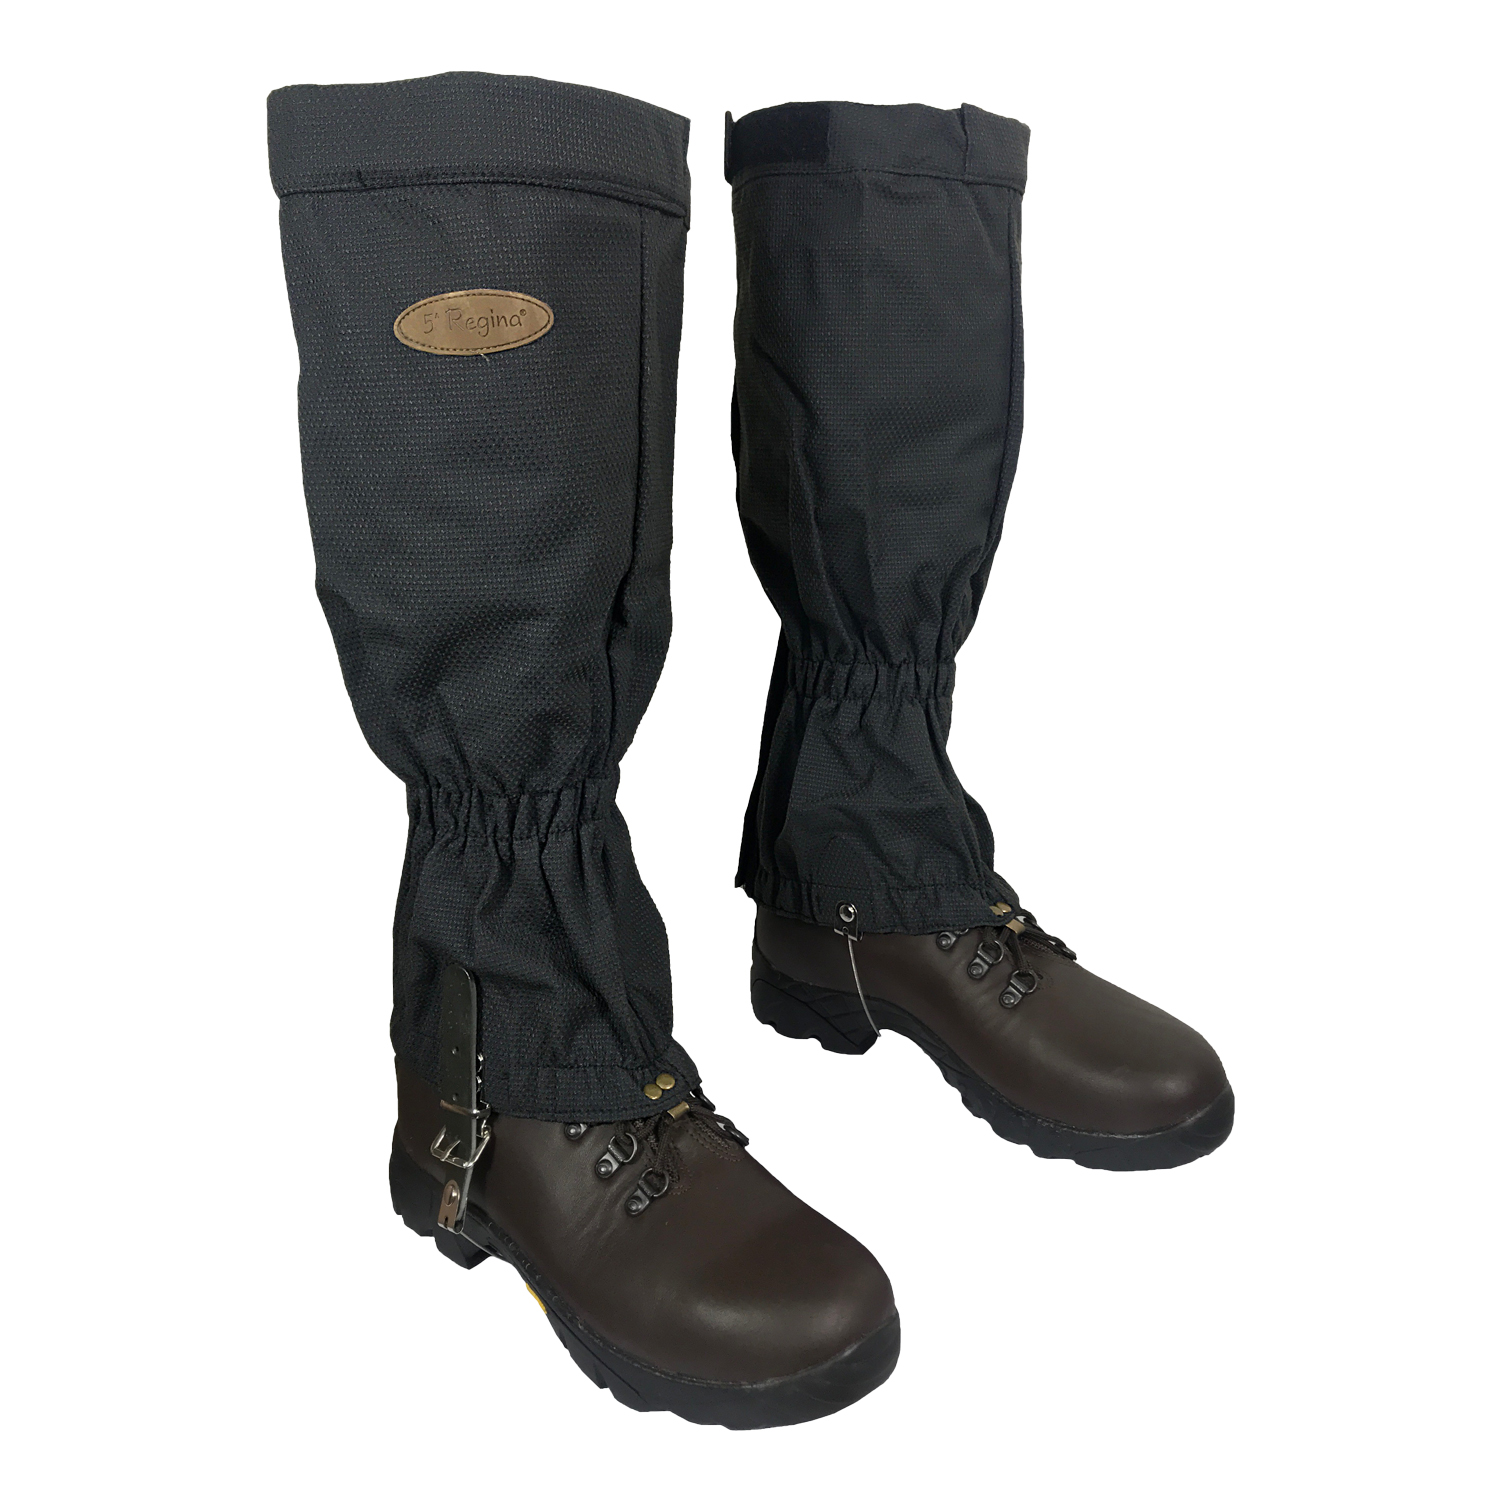 Gaiters leggings teflon heavy hunting taslon hiking outdoor climbing